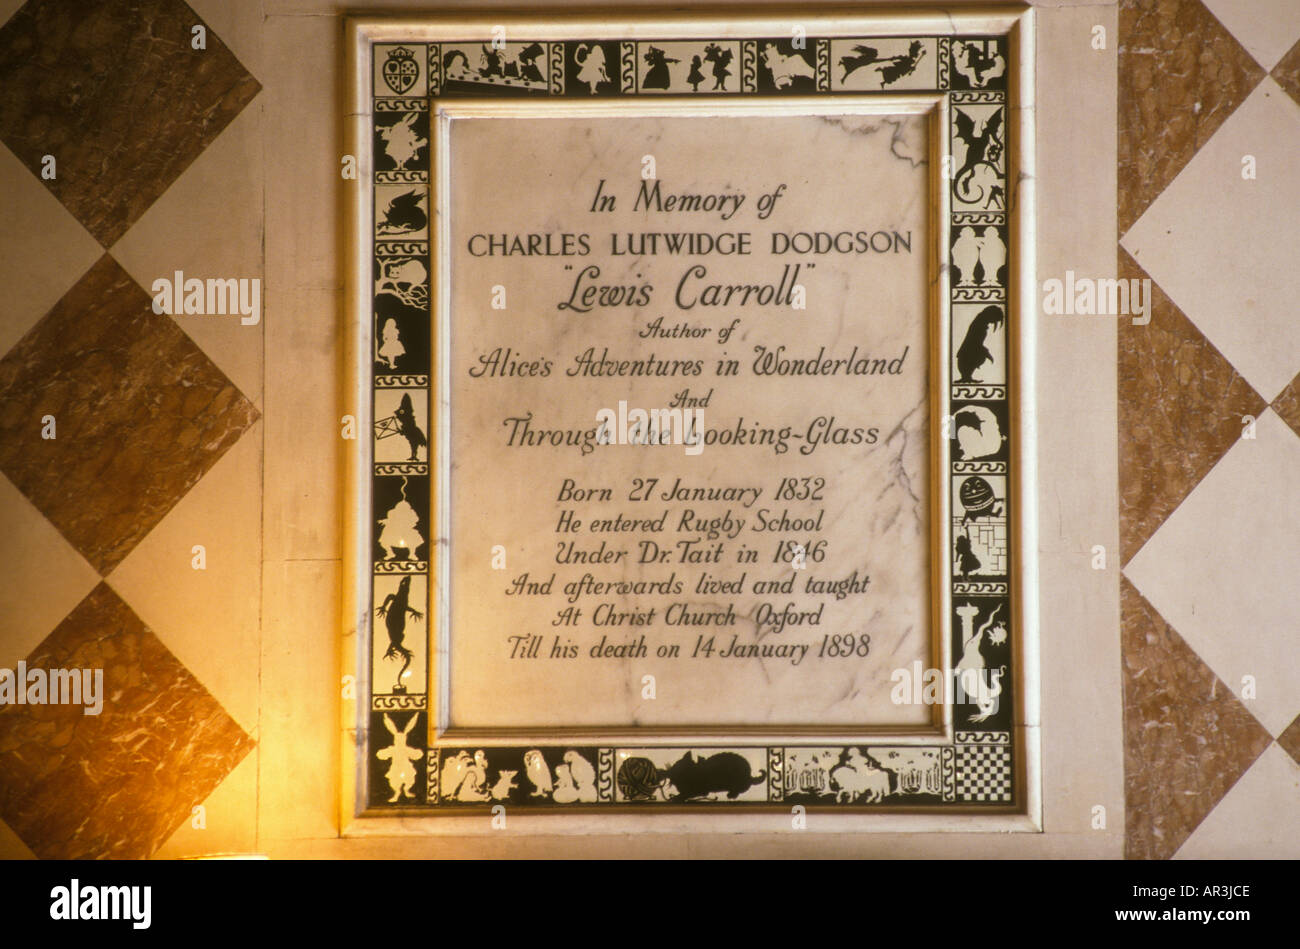 Plaque in memory of Lewis Carroll in Rugby School, Warwickshire England - Stock Image